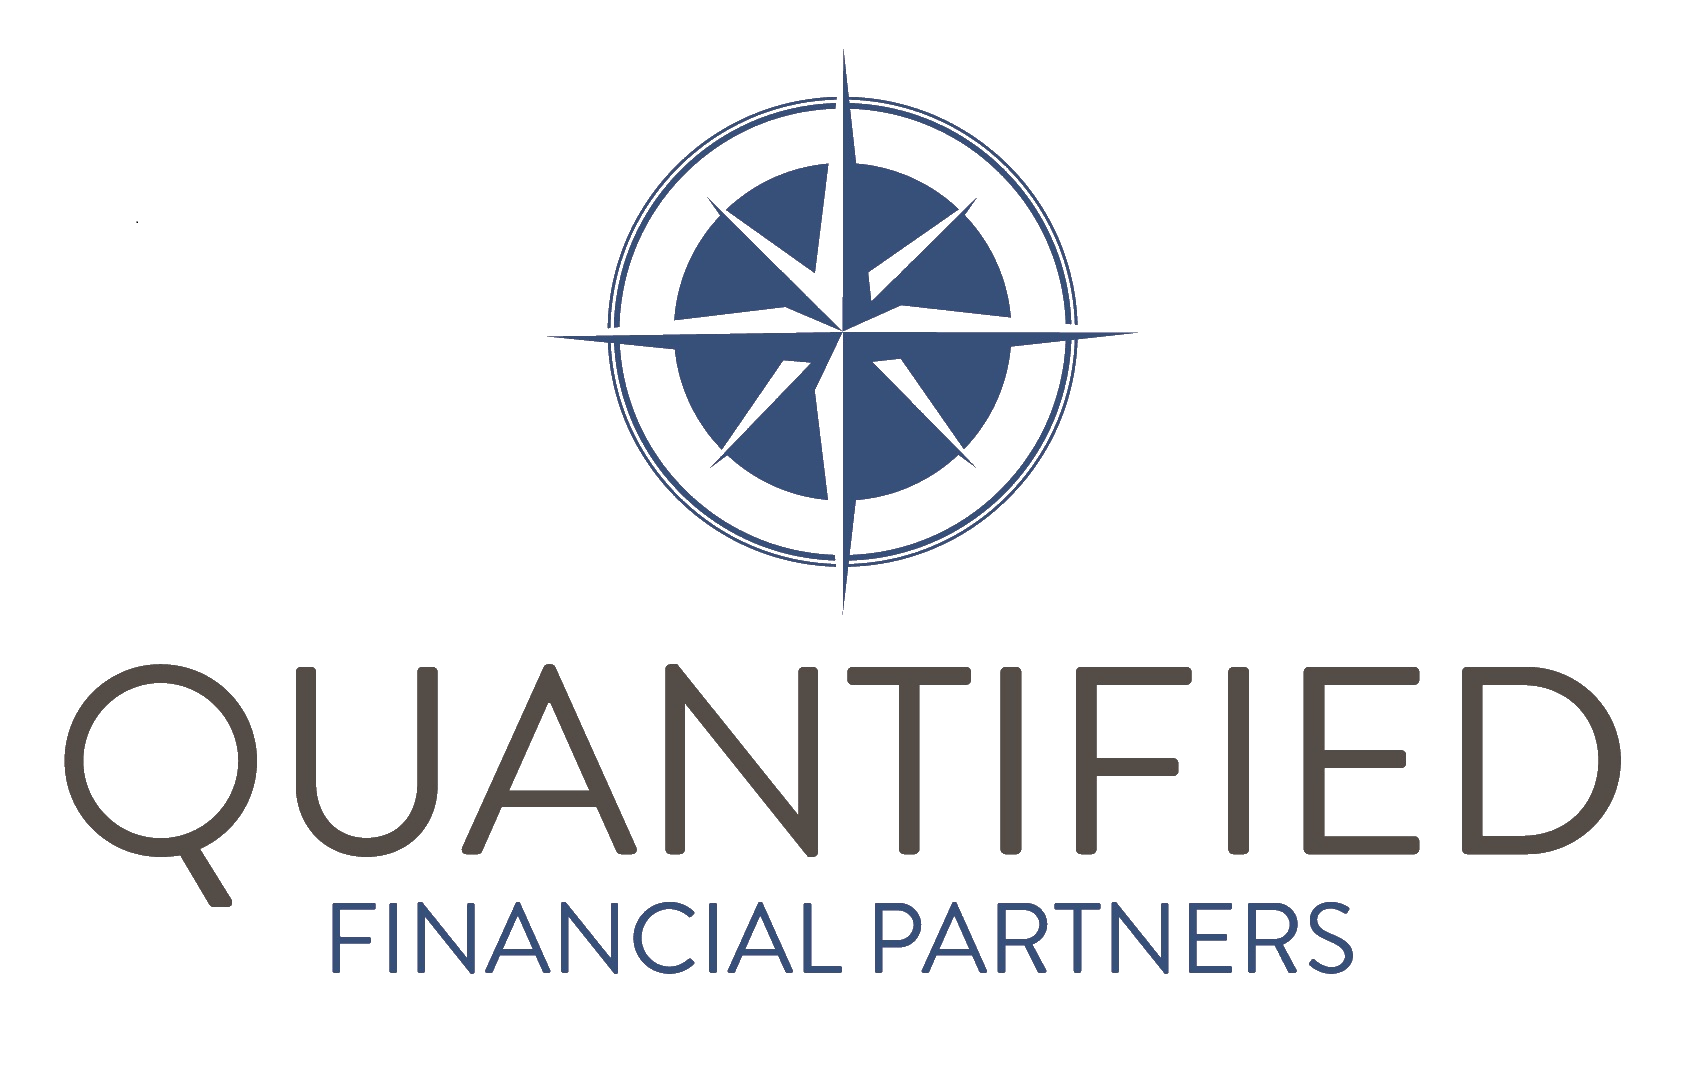 Quantified Financial Partners